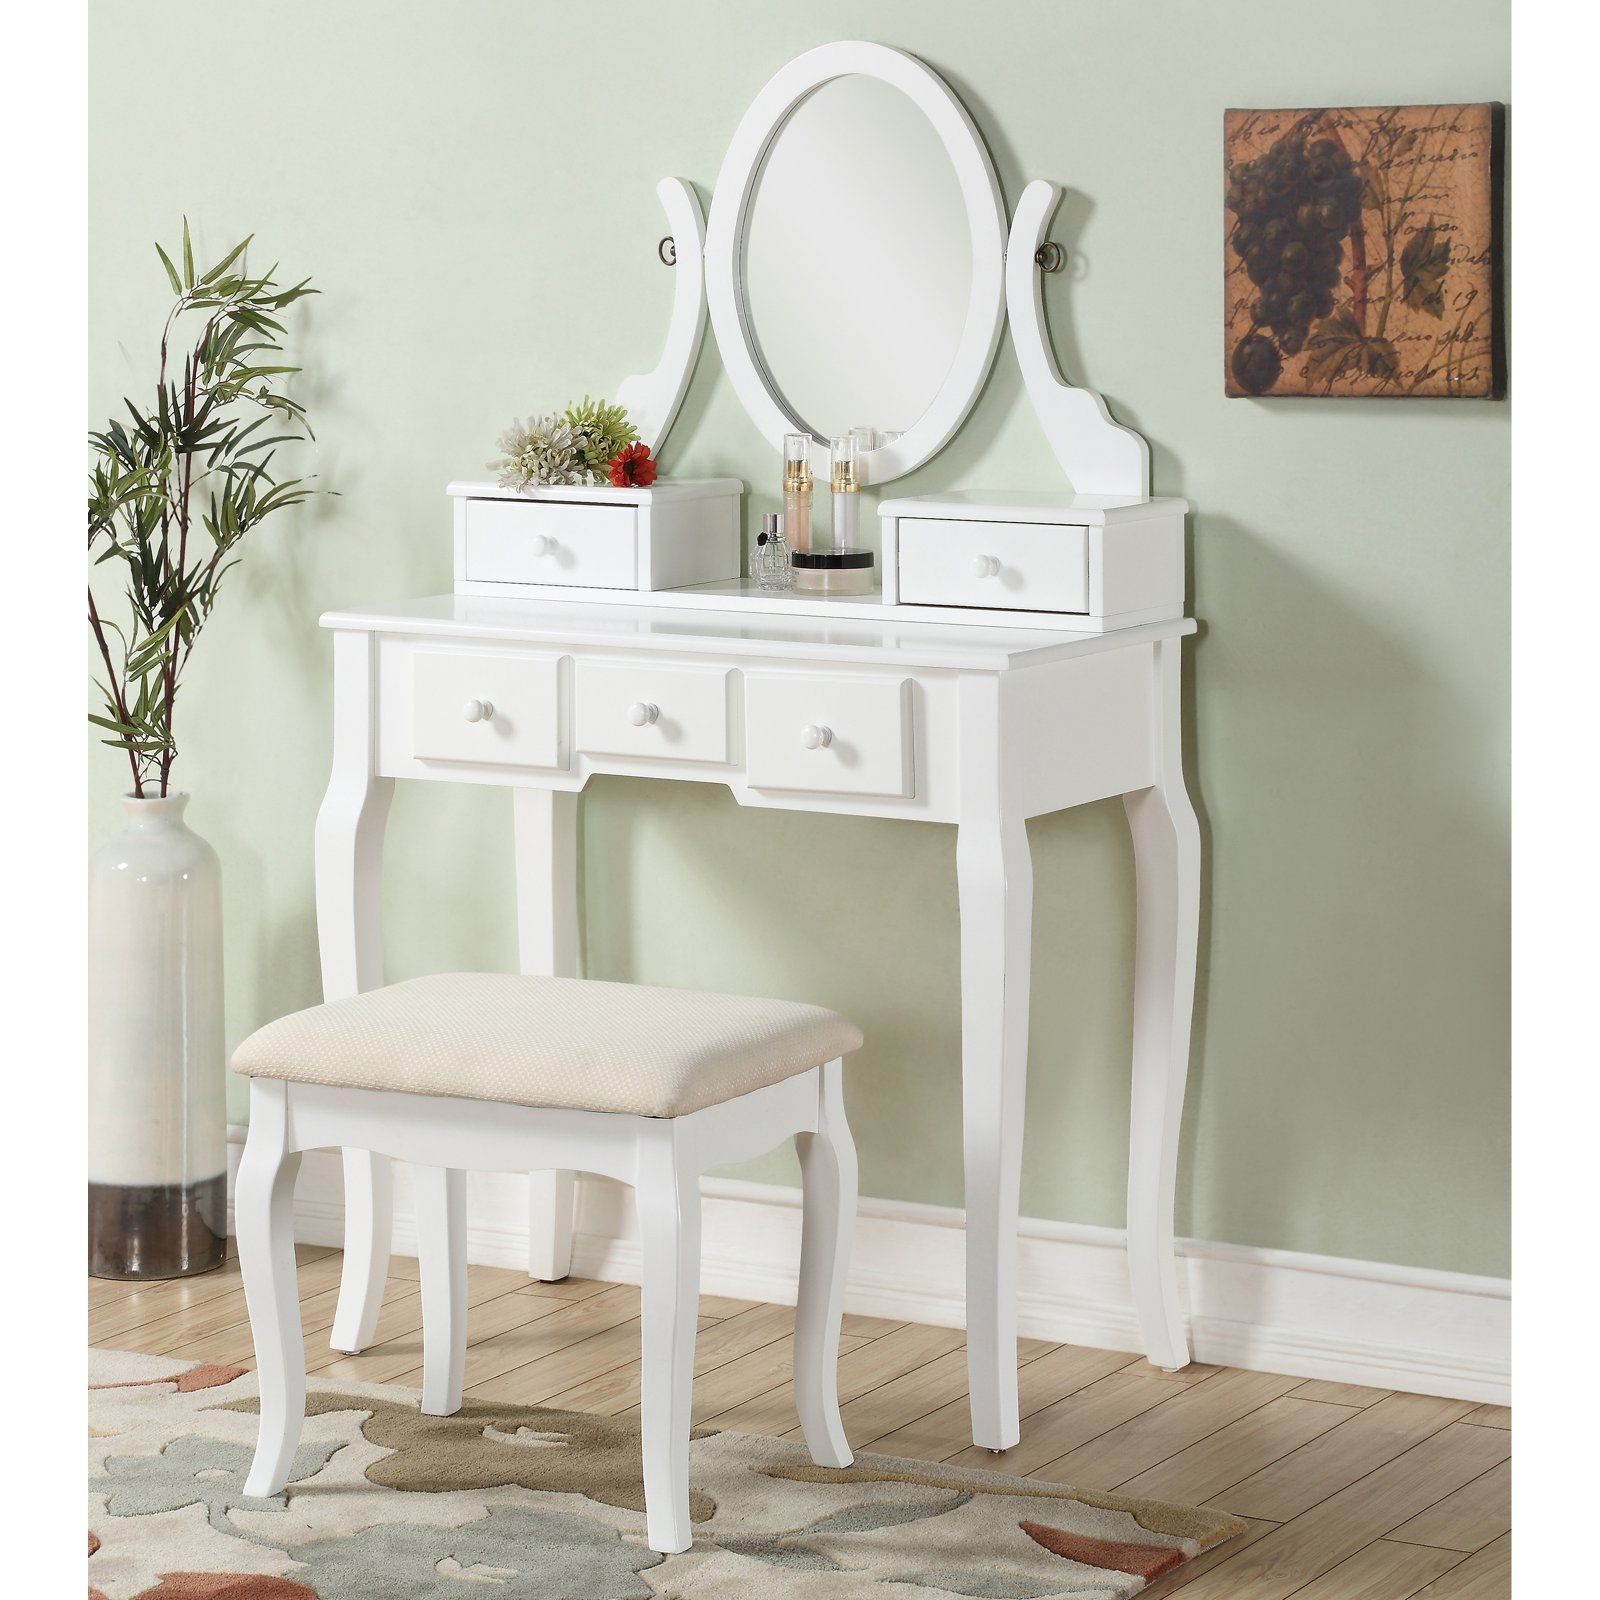 Roundhill Furniture Ashley Wooden Bedroom Vanity And Stool Set White